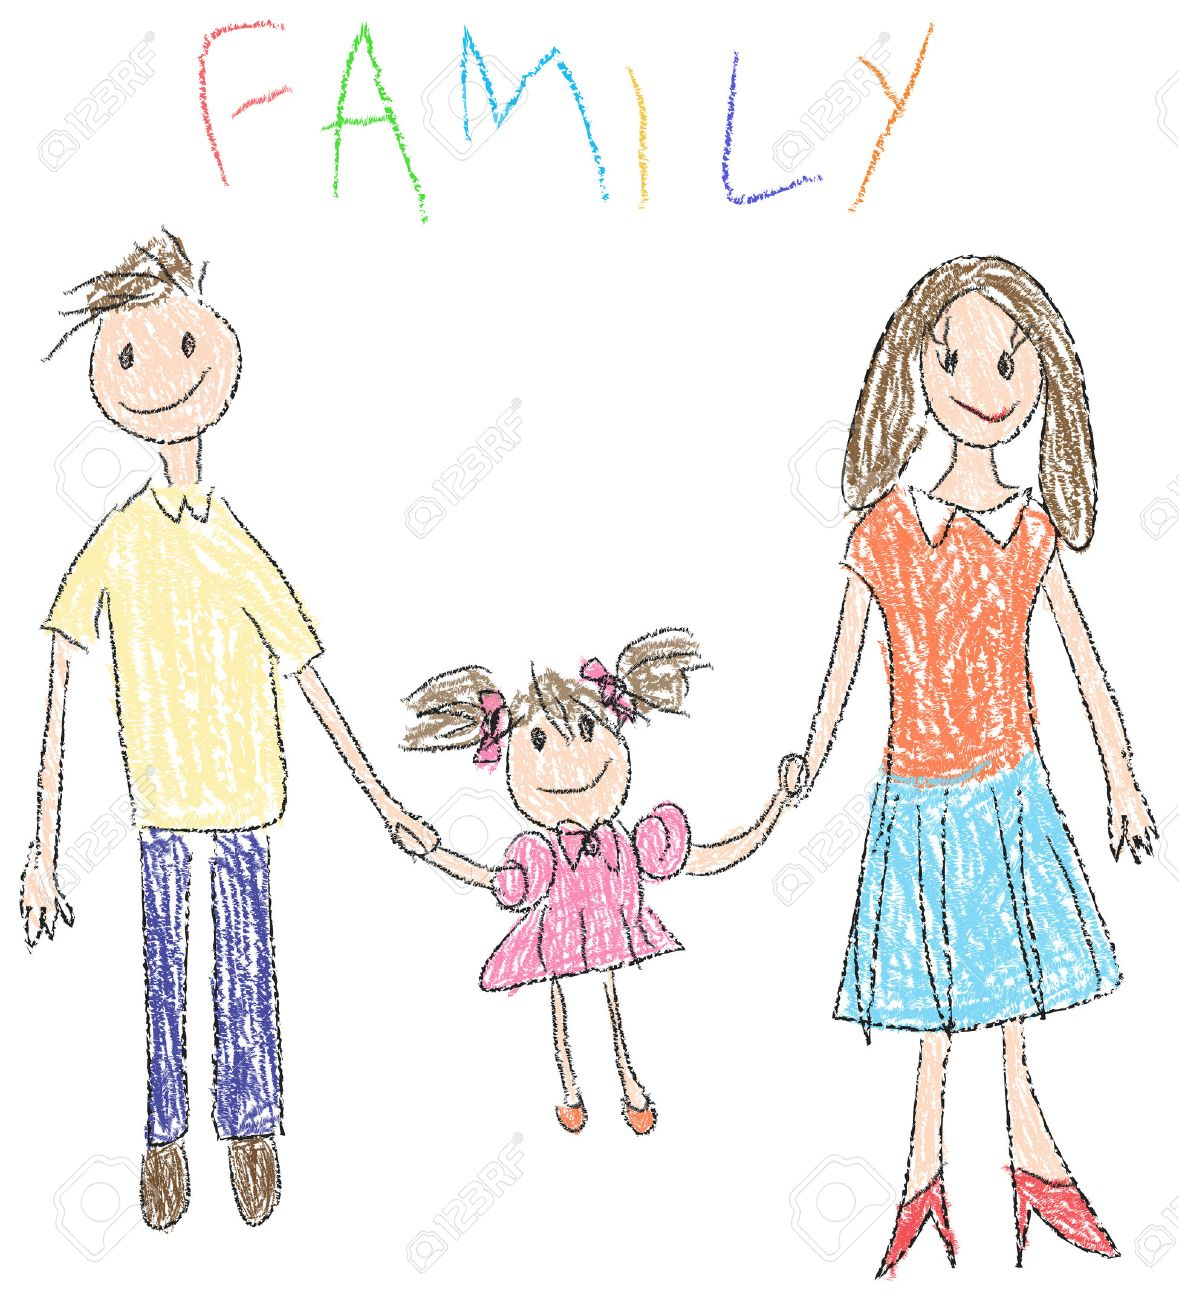 drawing of a happy familiy with child and her parents in kindergarten style stock photo - Drawing Pictures For Kindergarten